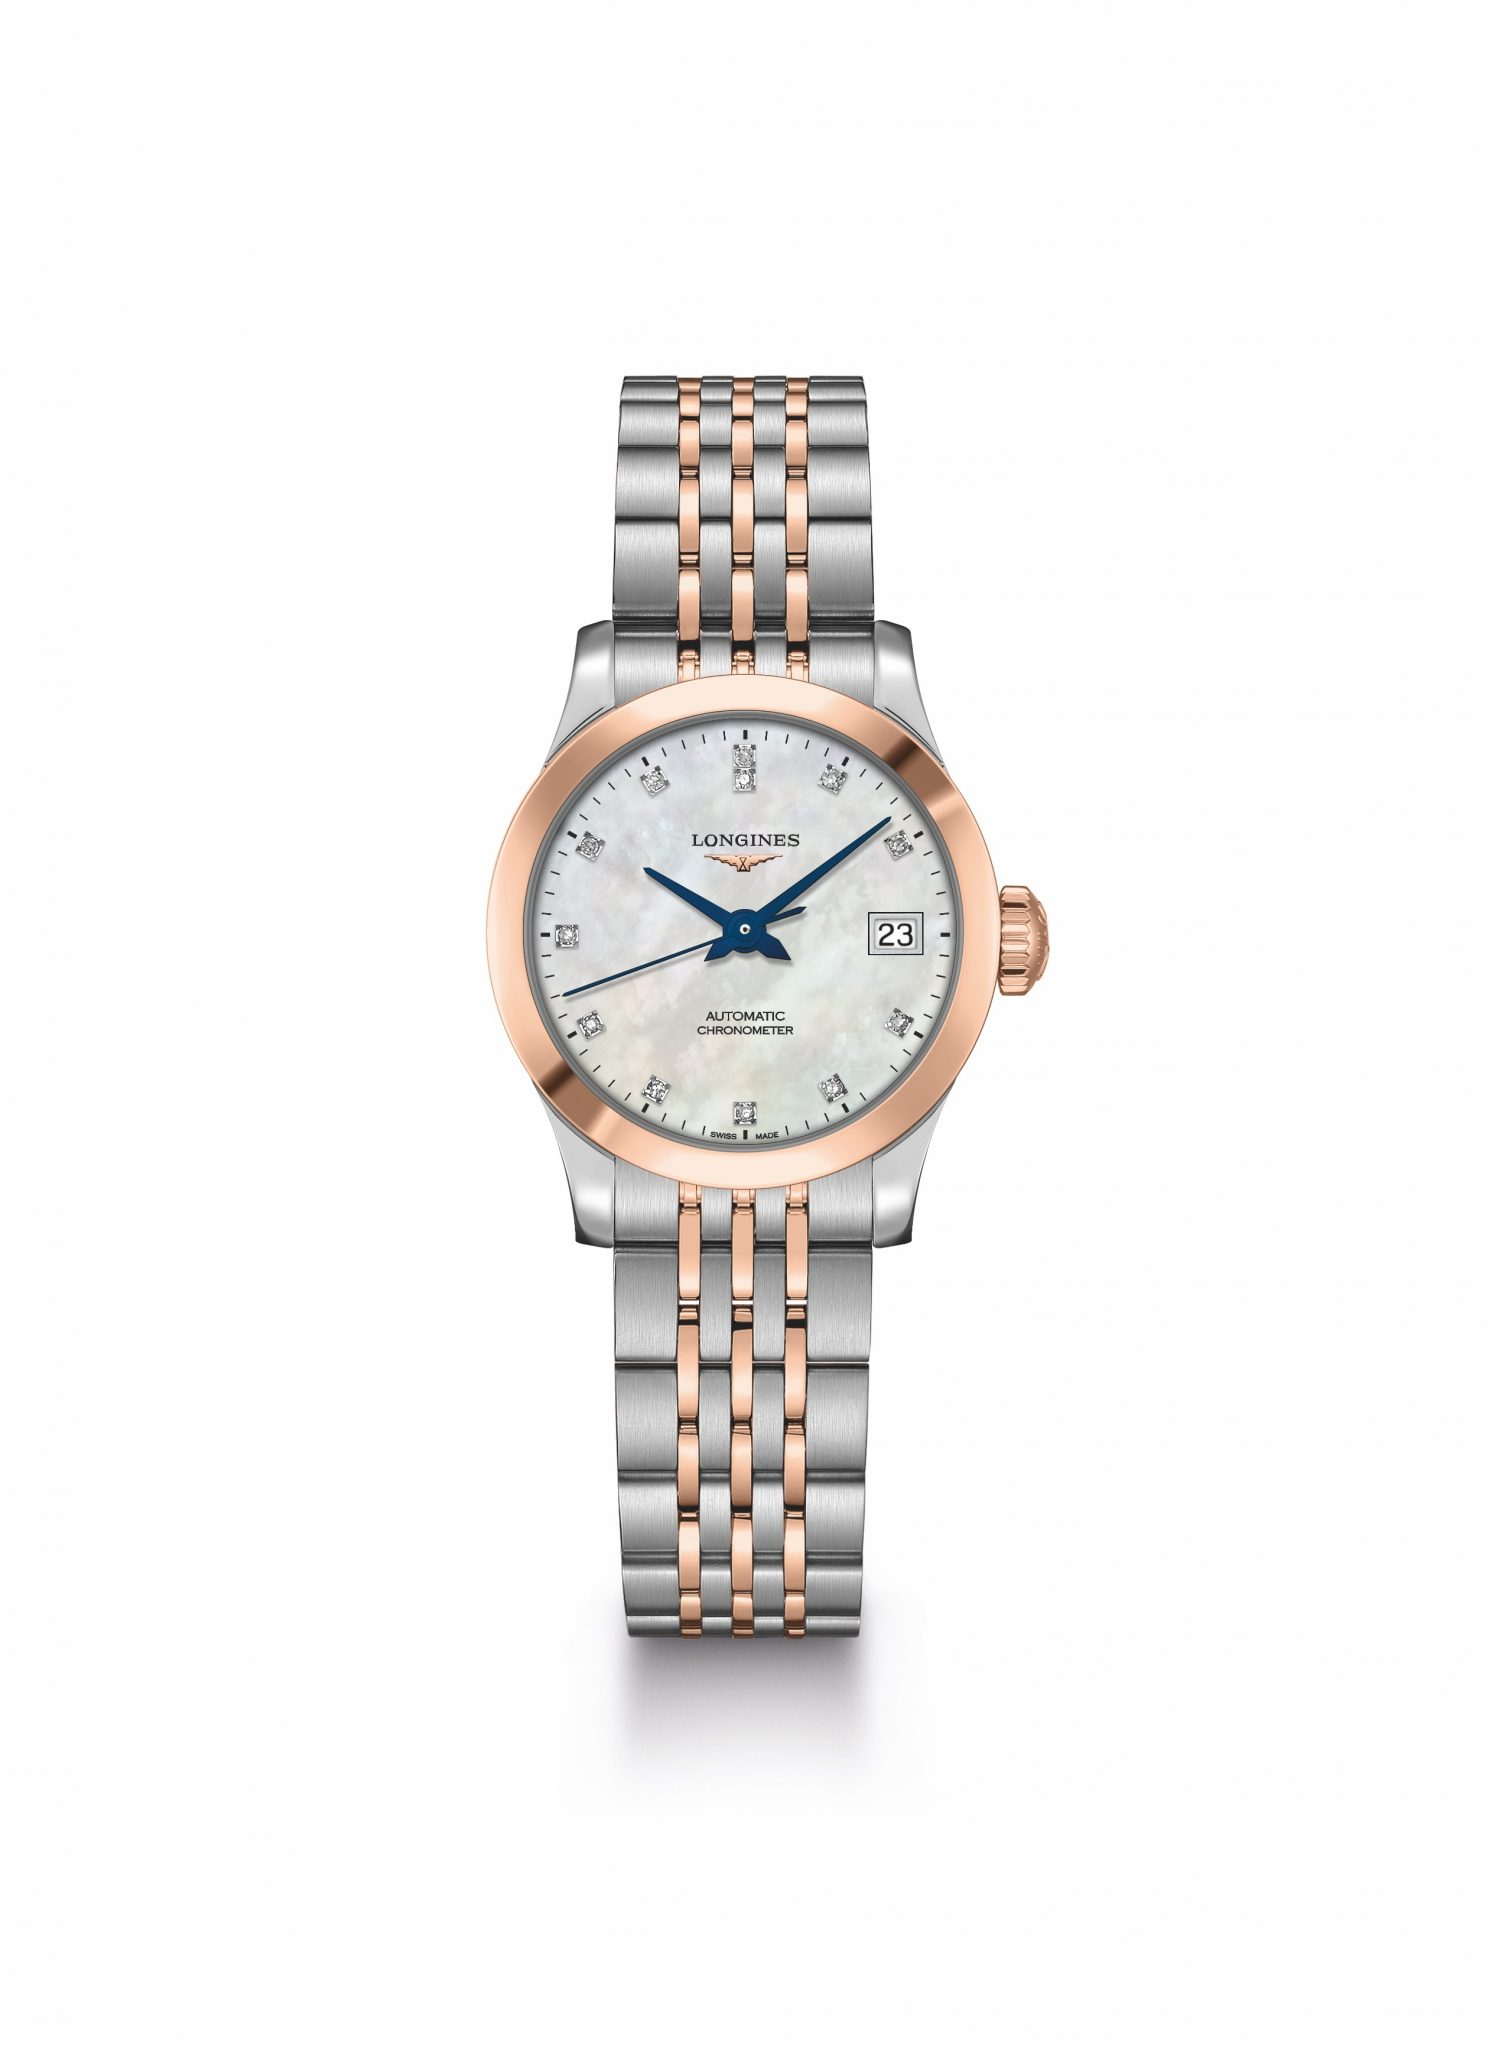 One would usually expect the hands to match the rose gold and stainless  steel strap 5ecdd3d7bf4